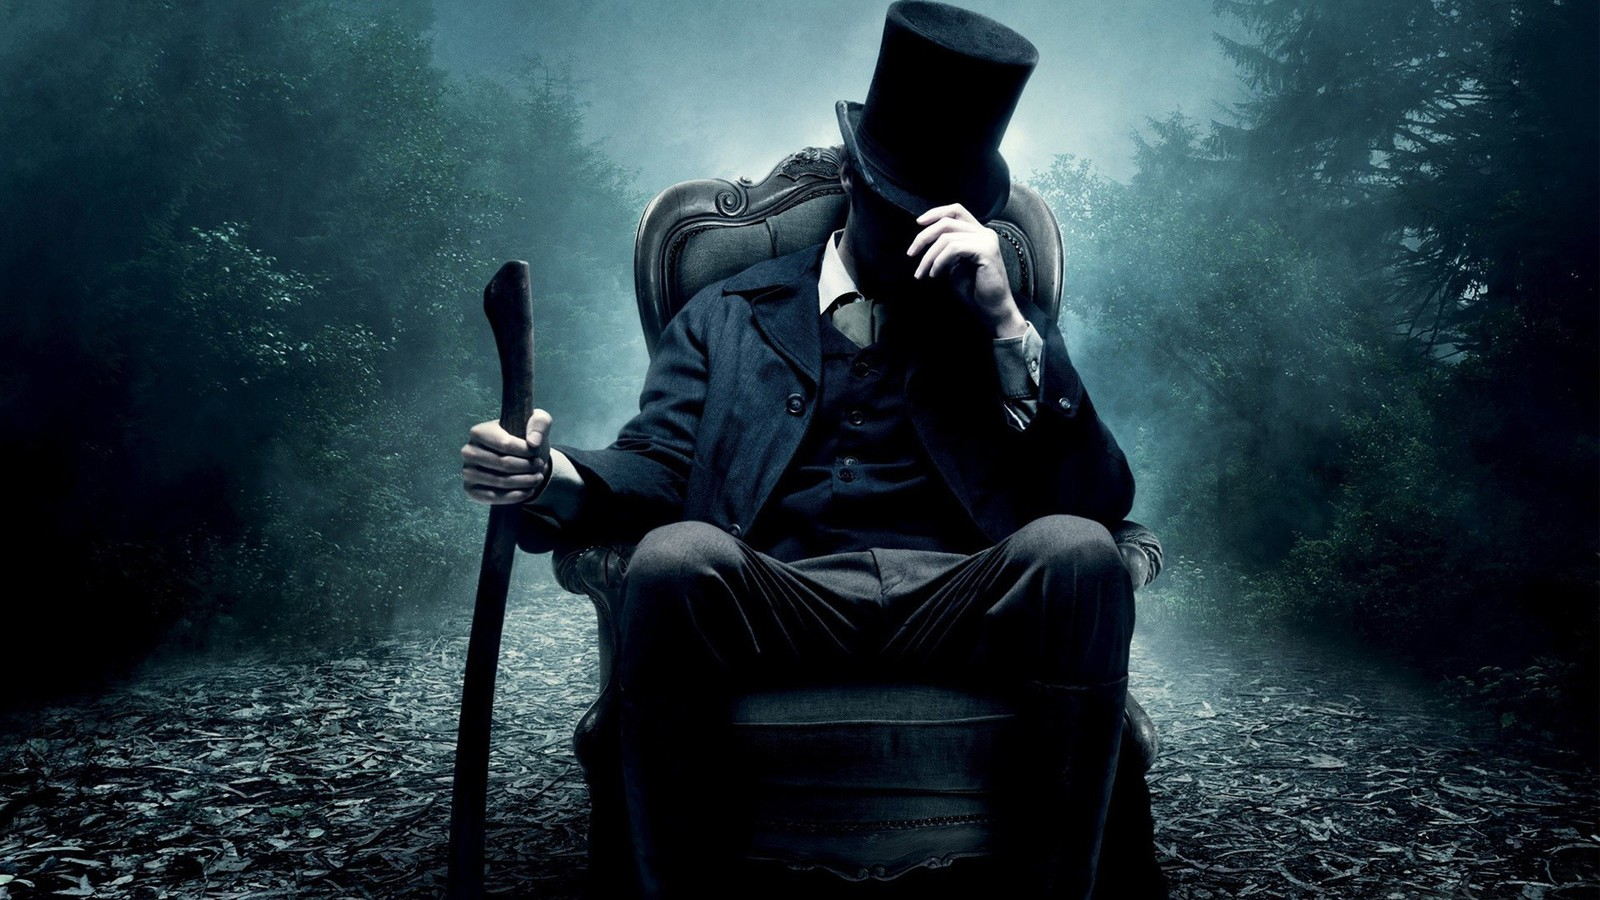 Movies Abraham Lincoln Vampire Hunter Game Wallpaper